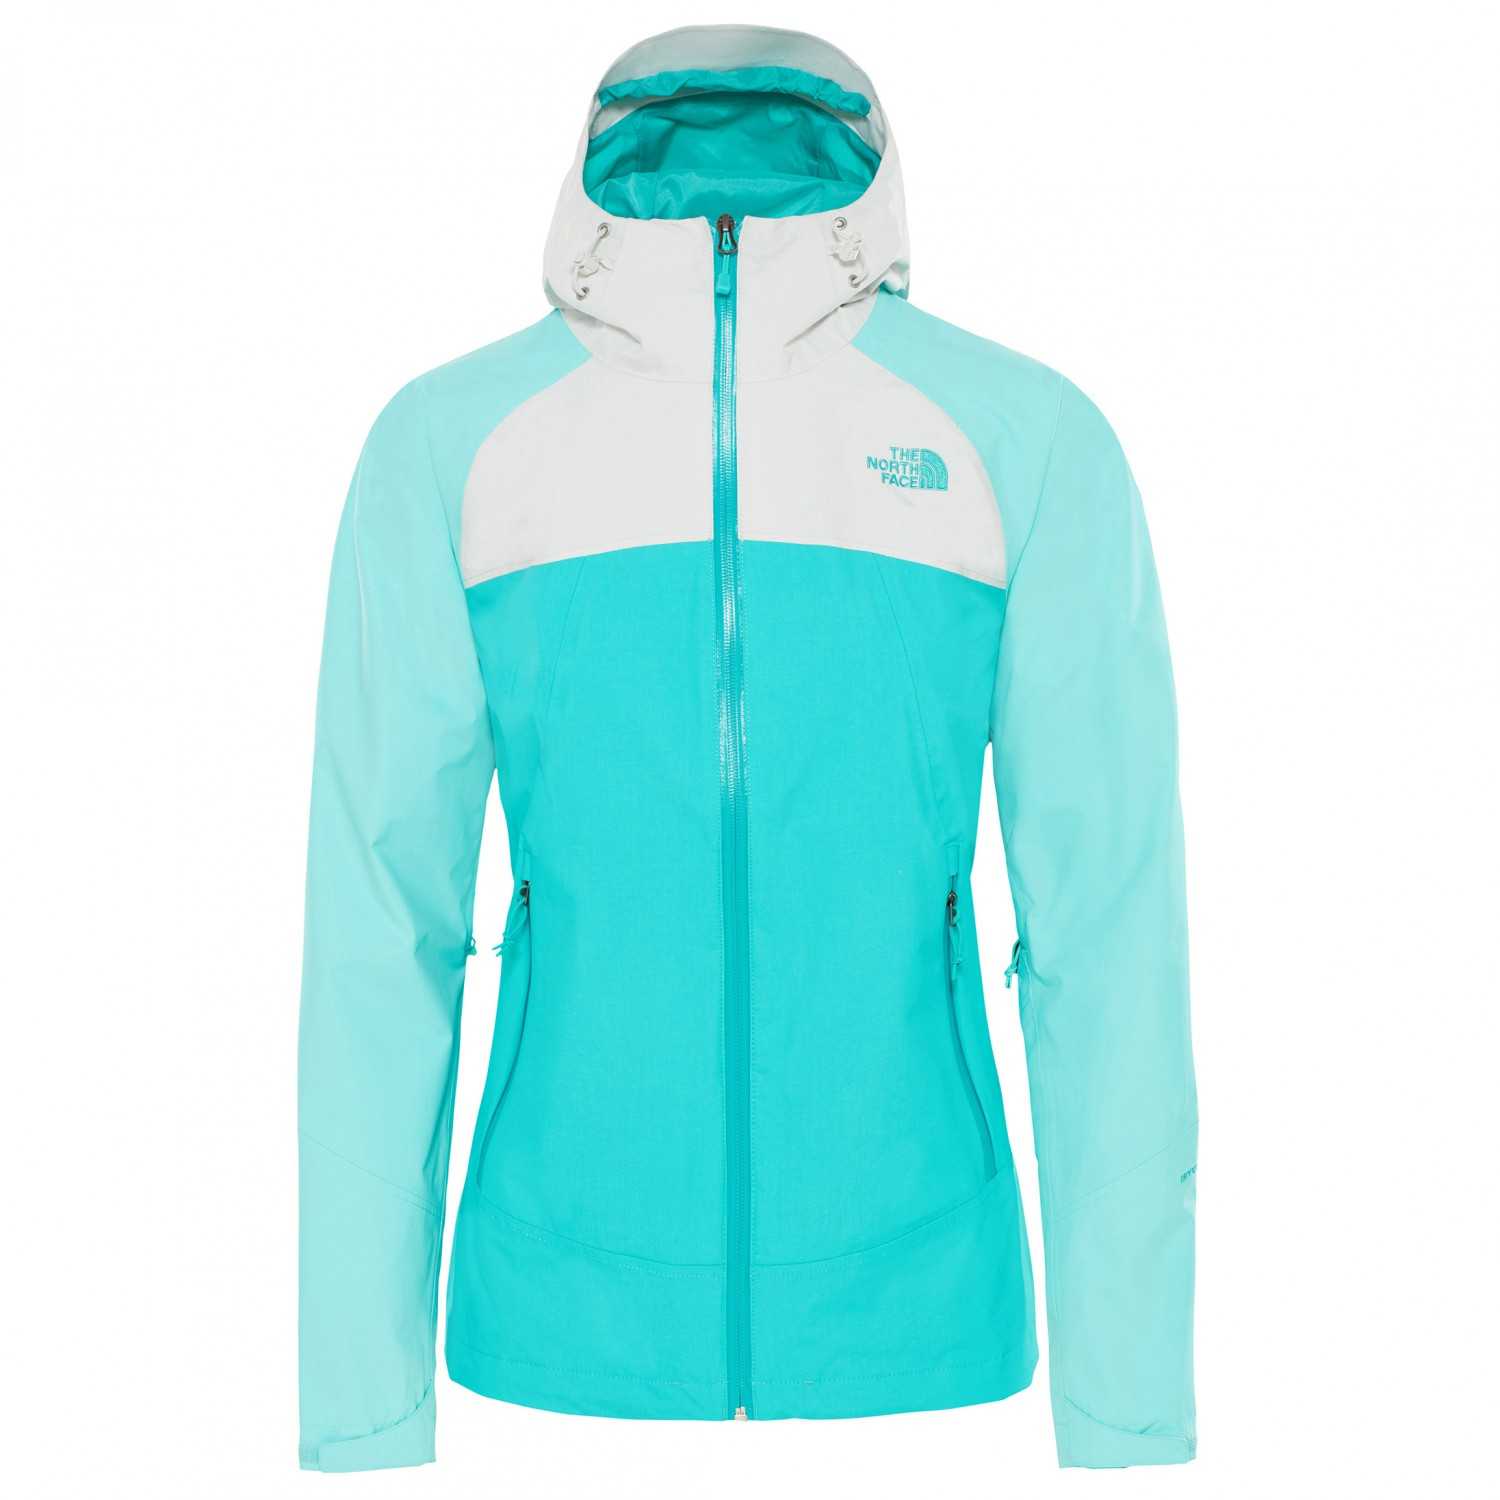 c593f1286 The North Face Stratos Jacket - Waterproof jacket Women's | Free EU ...